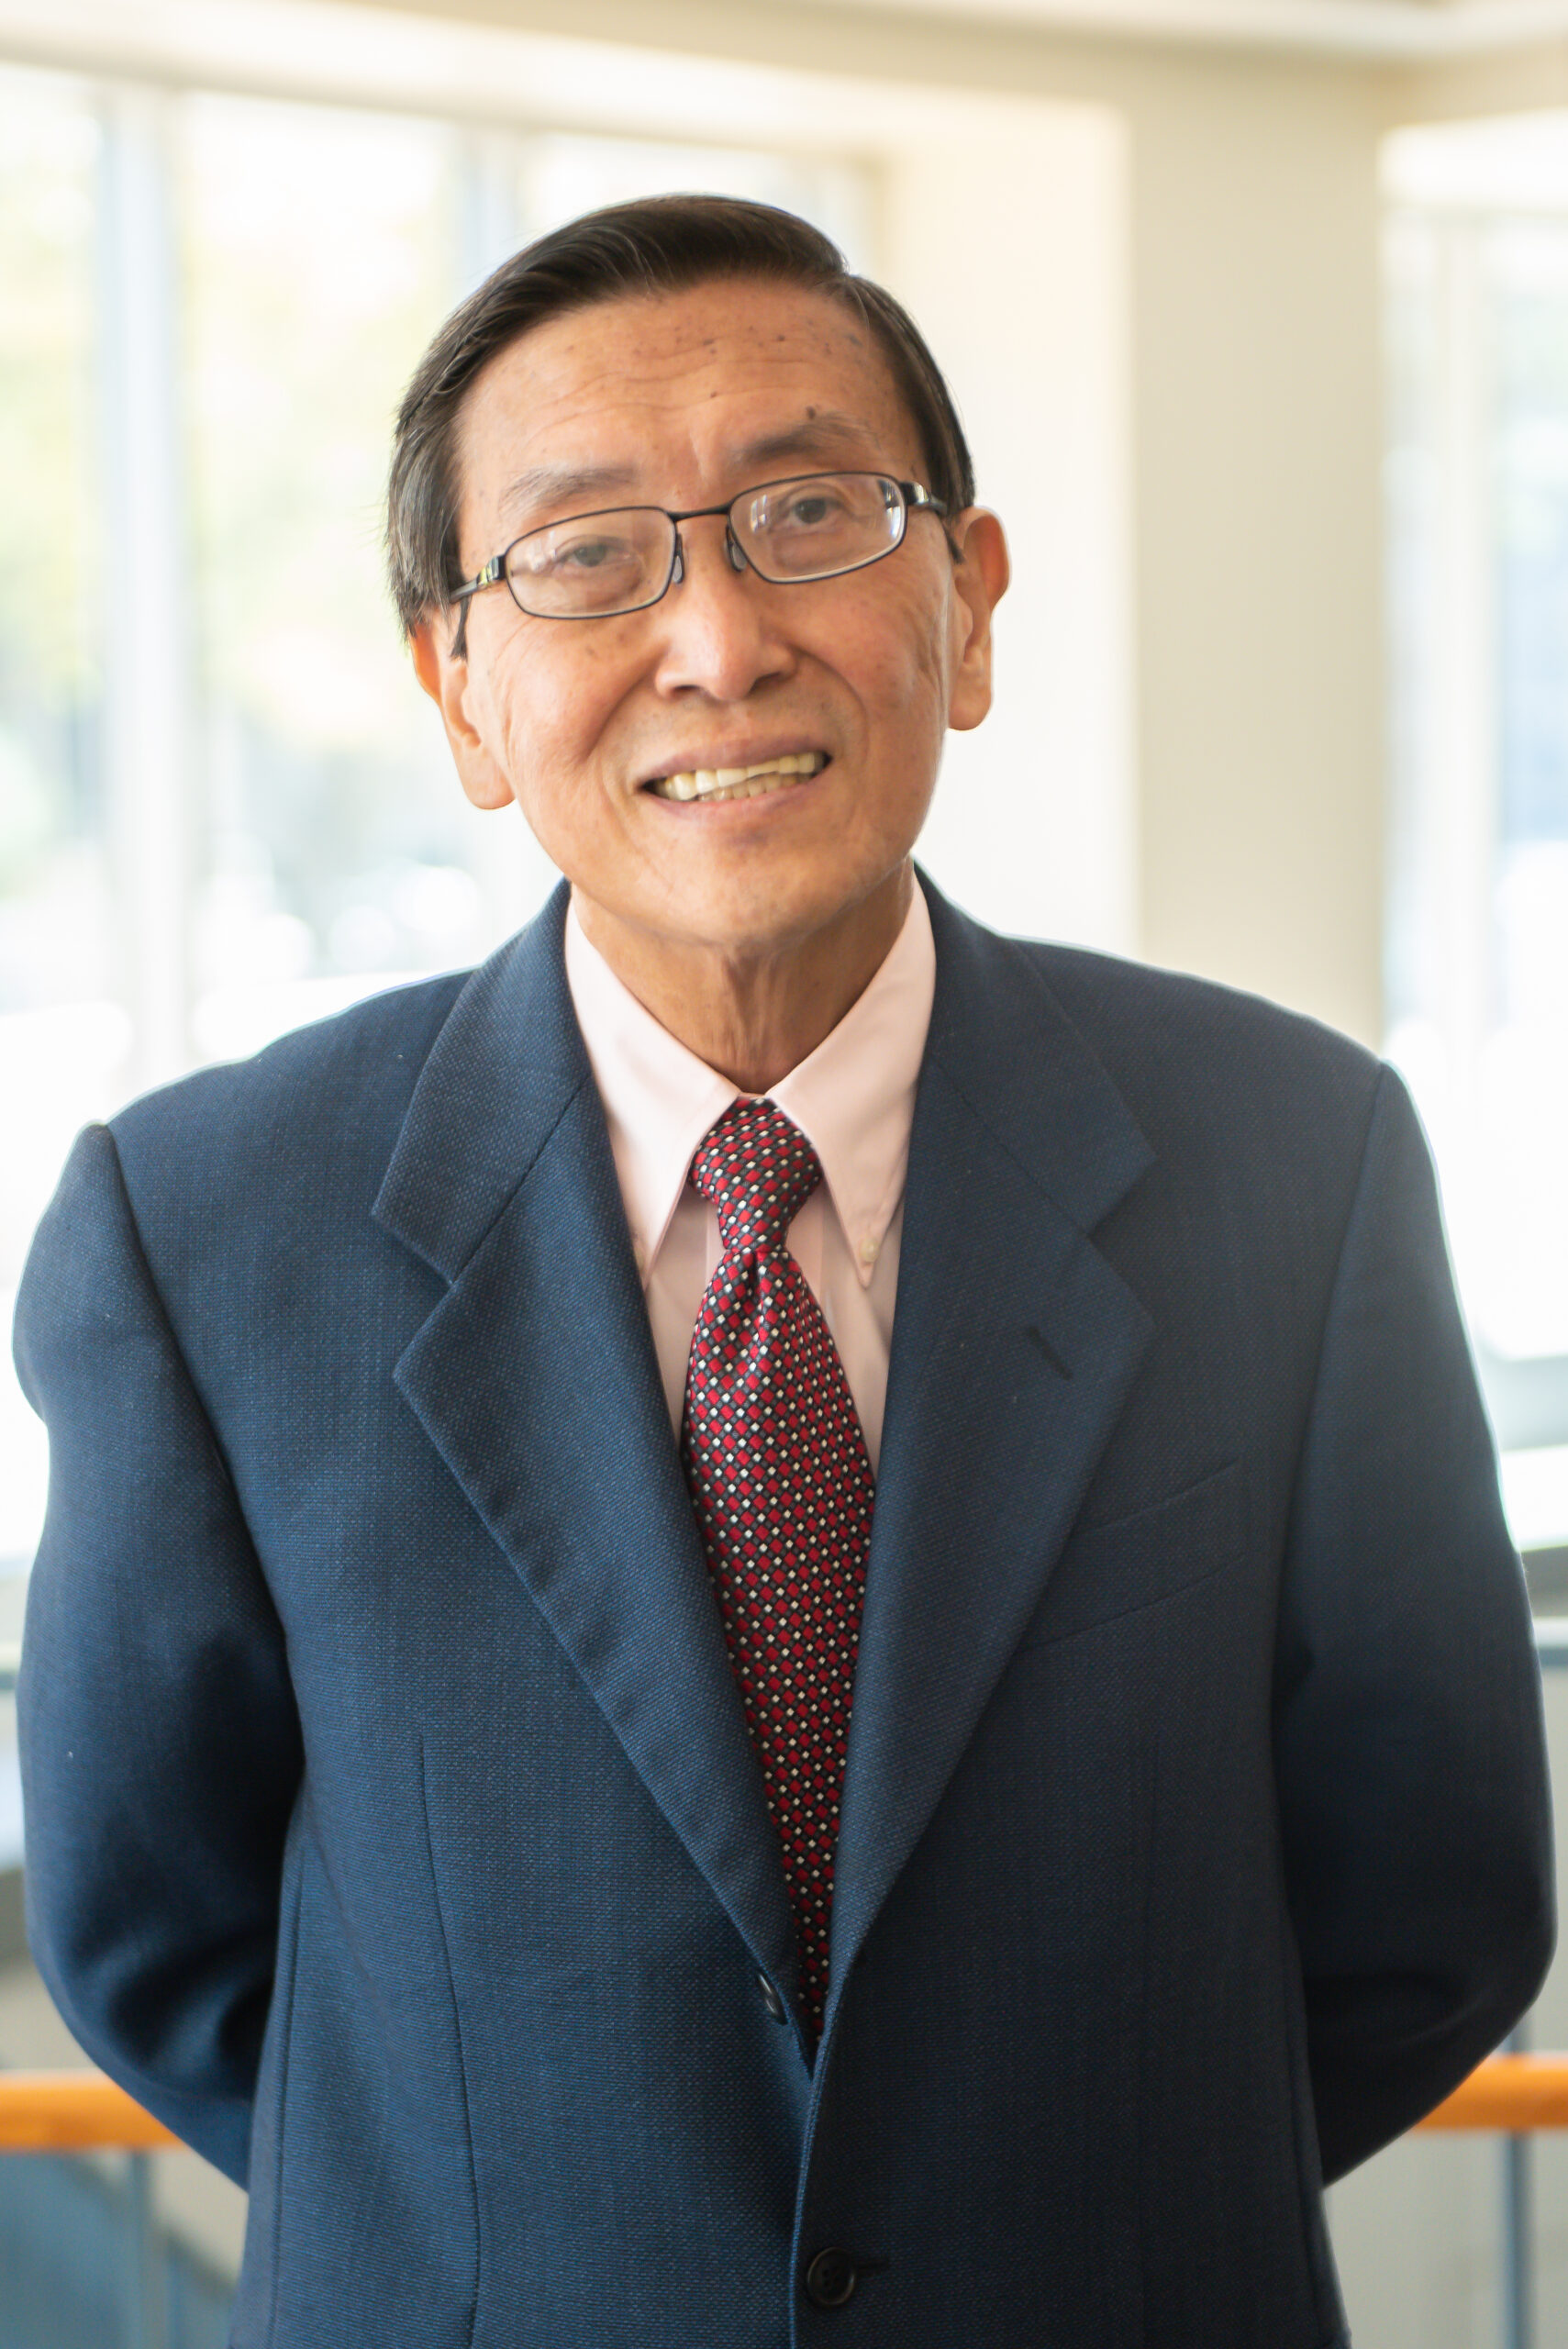 Physicist Dr. Siu Chin